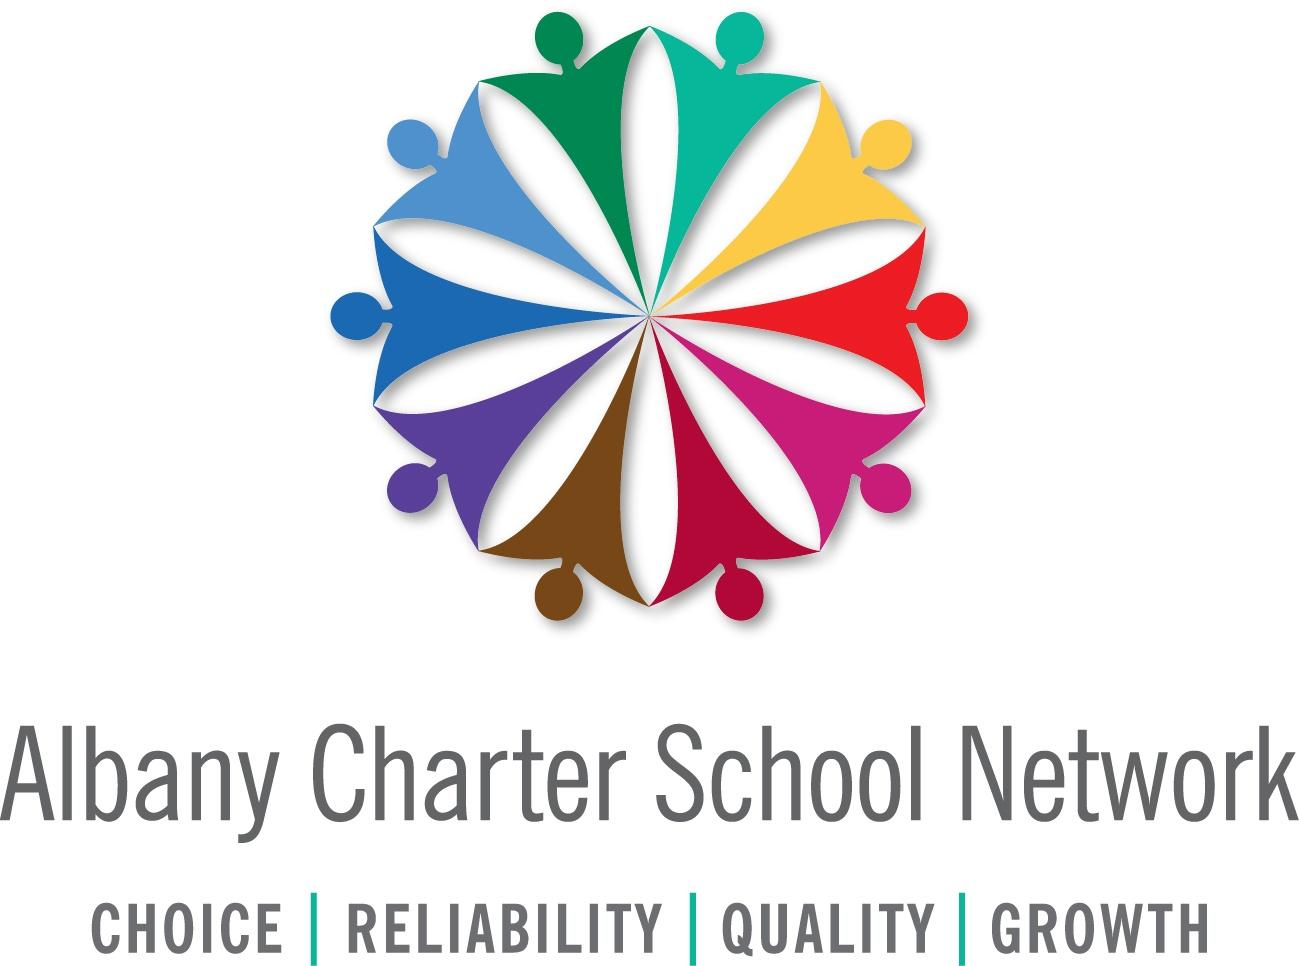 Albany Charter School Network Logo featuring a rainbow colored circle emblem comprised of human-like figures with the words Choice, Reliability, Quality, and Growth beneath